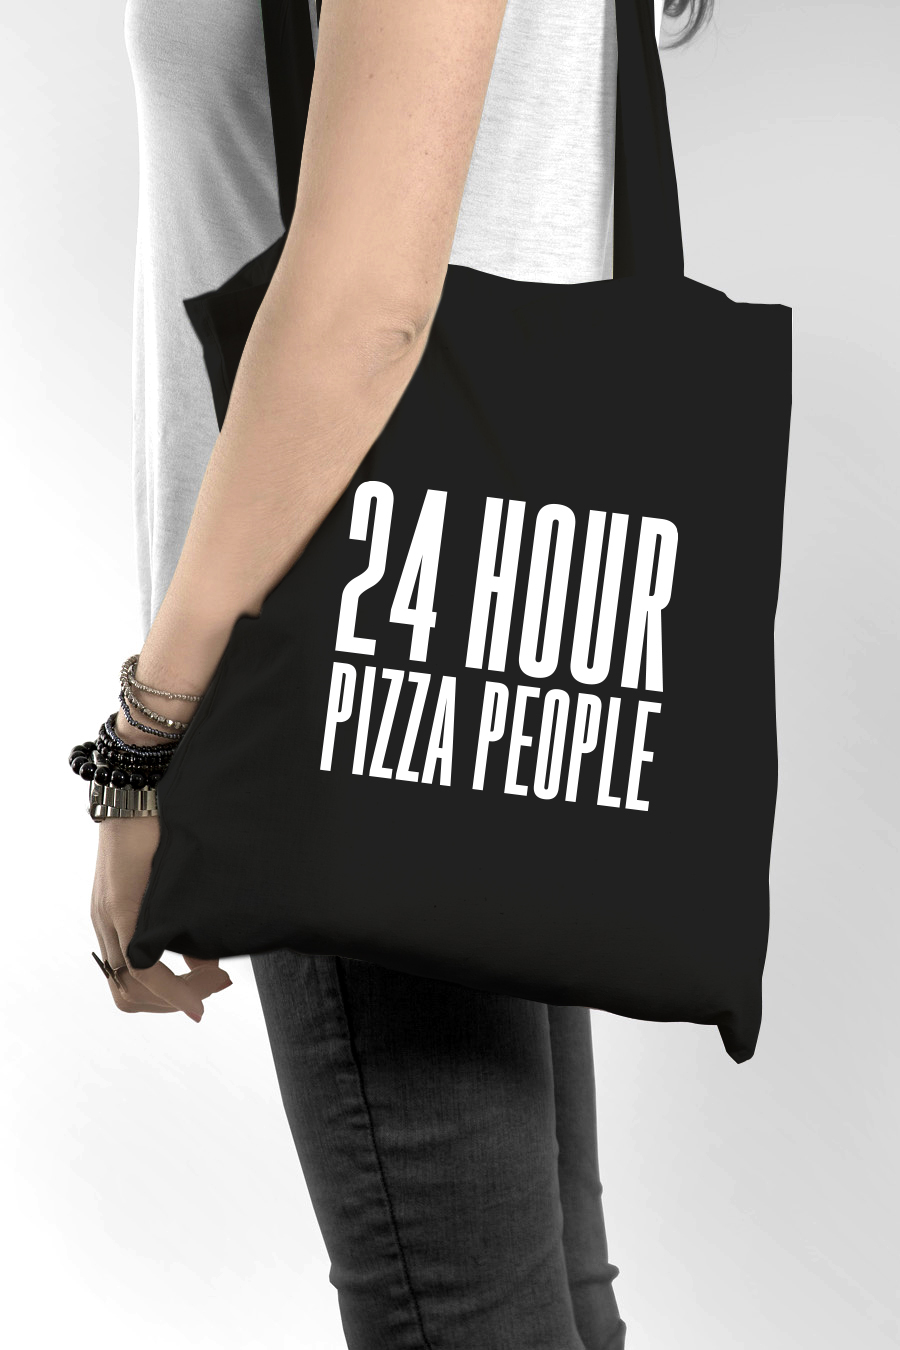 24 HOUR PIZZA PEOPLE - BAG 00004